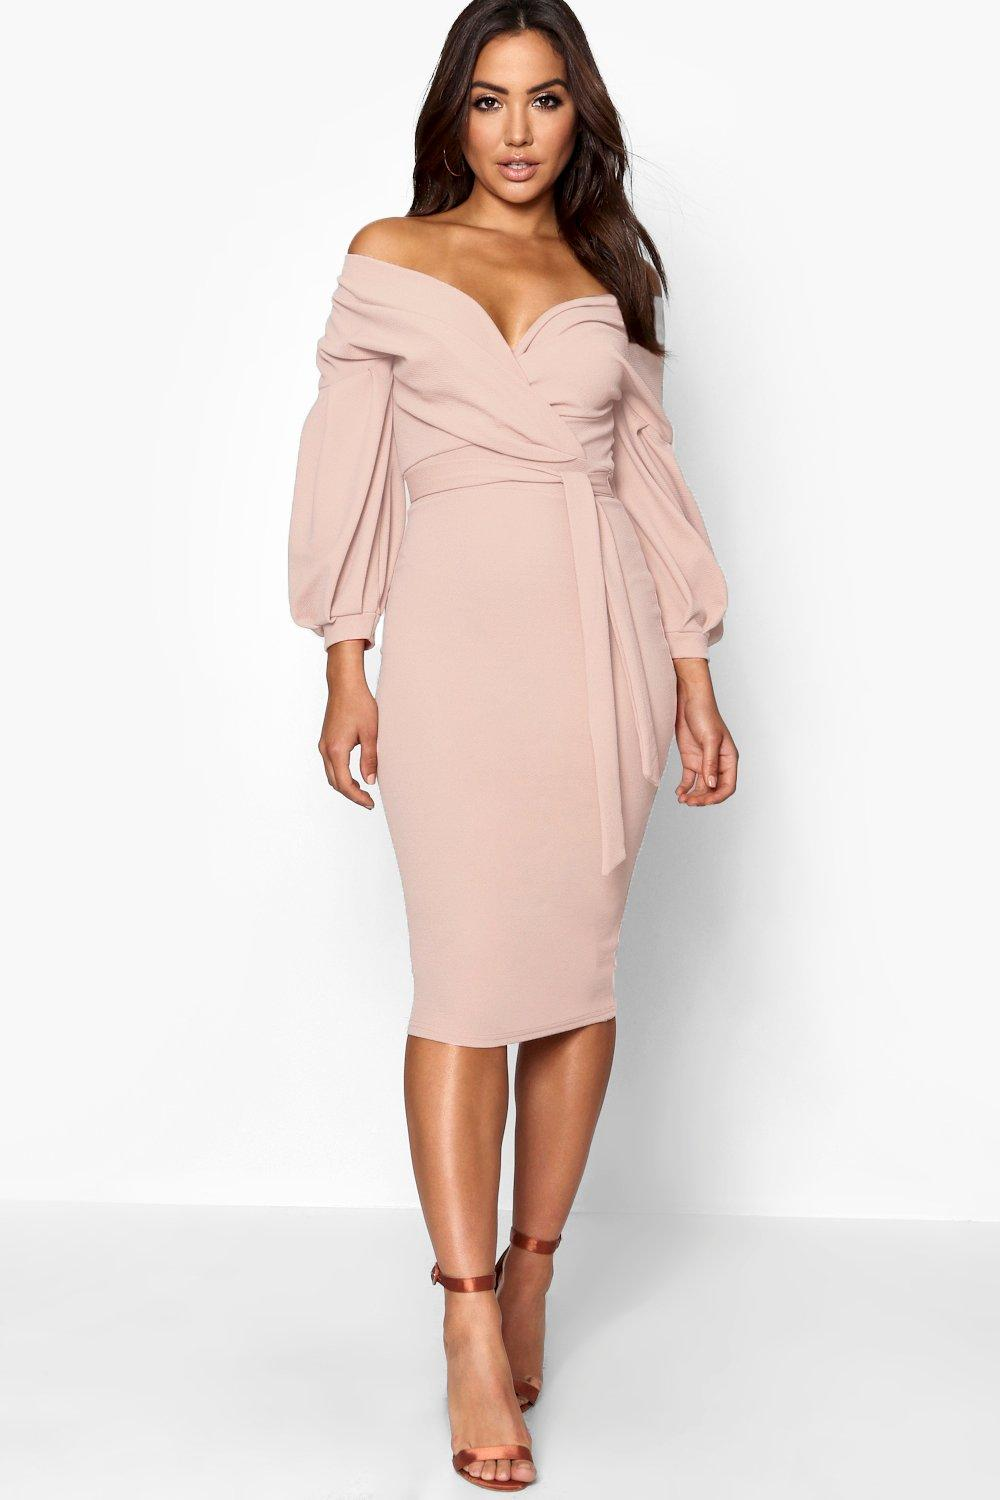 71135034b299 Off the Shoulder Wrap Midi Dress. Hover to zoom